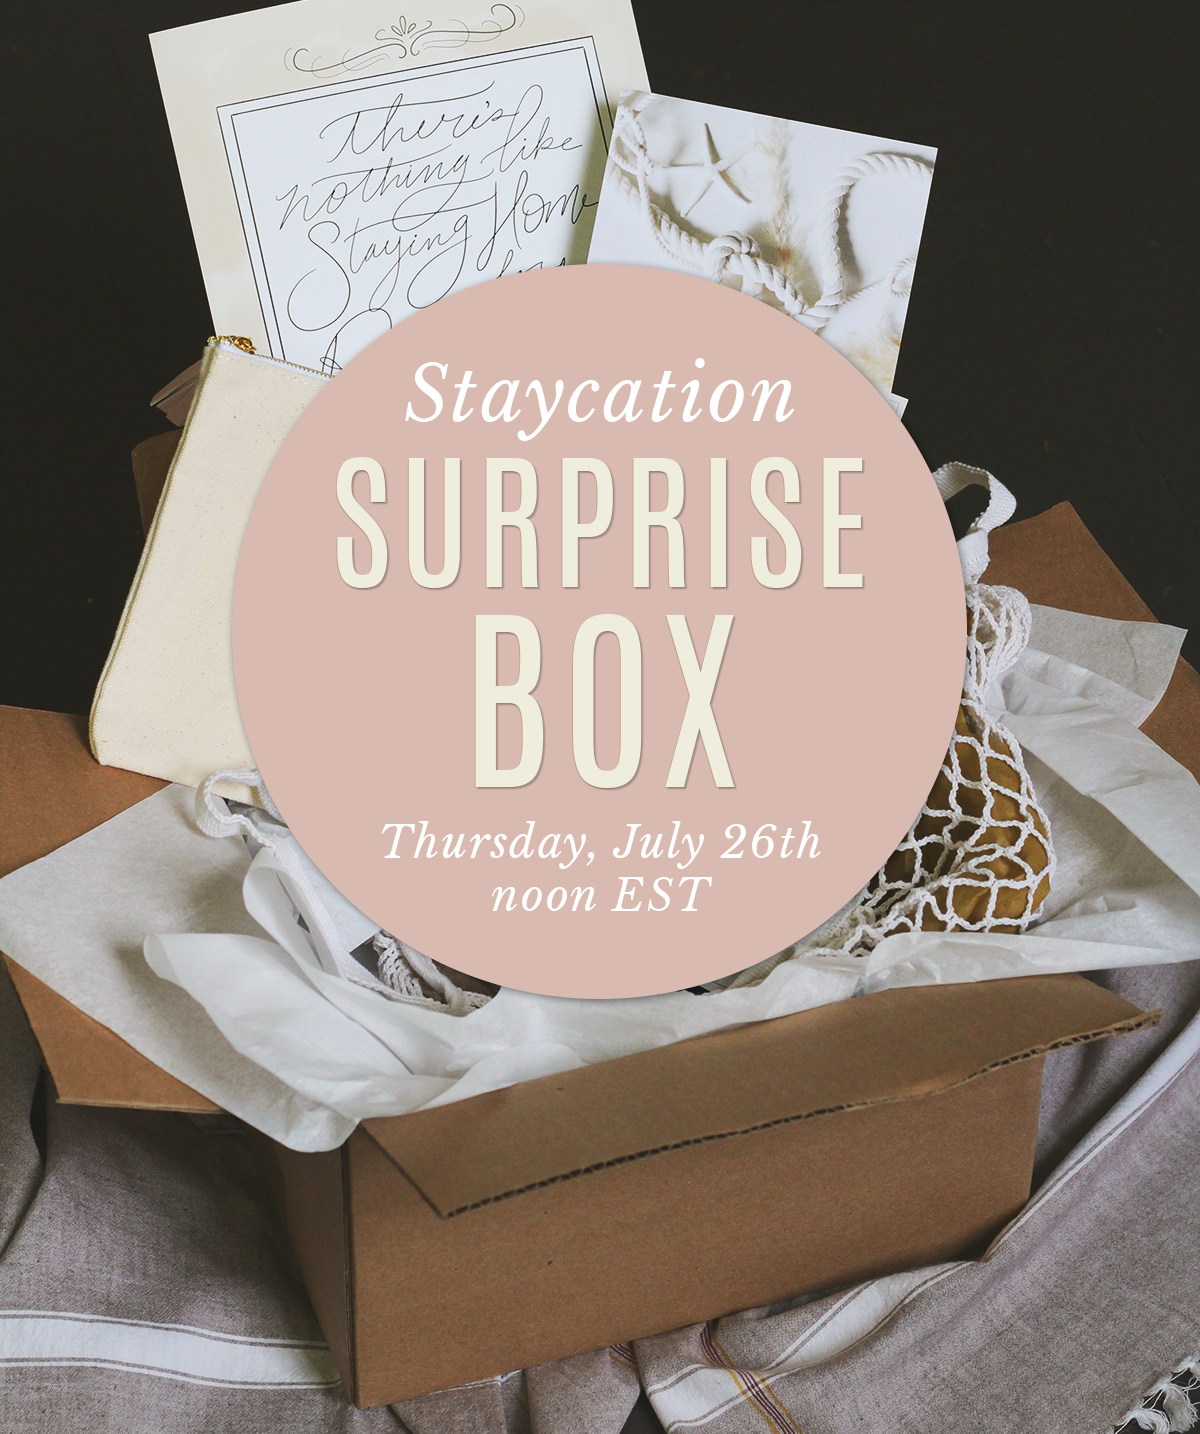 Lily & Val Staycation Surprise Box Launching on Thursday, July 26th